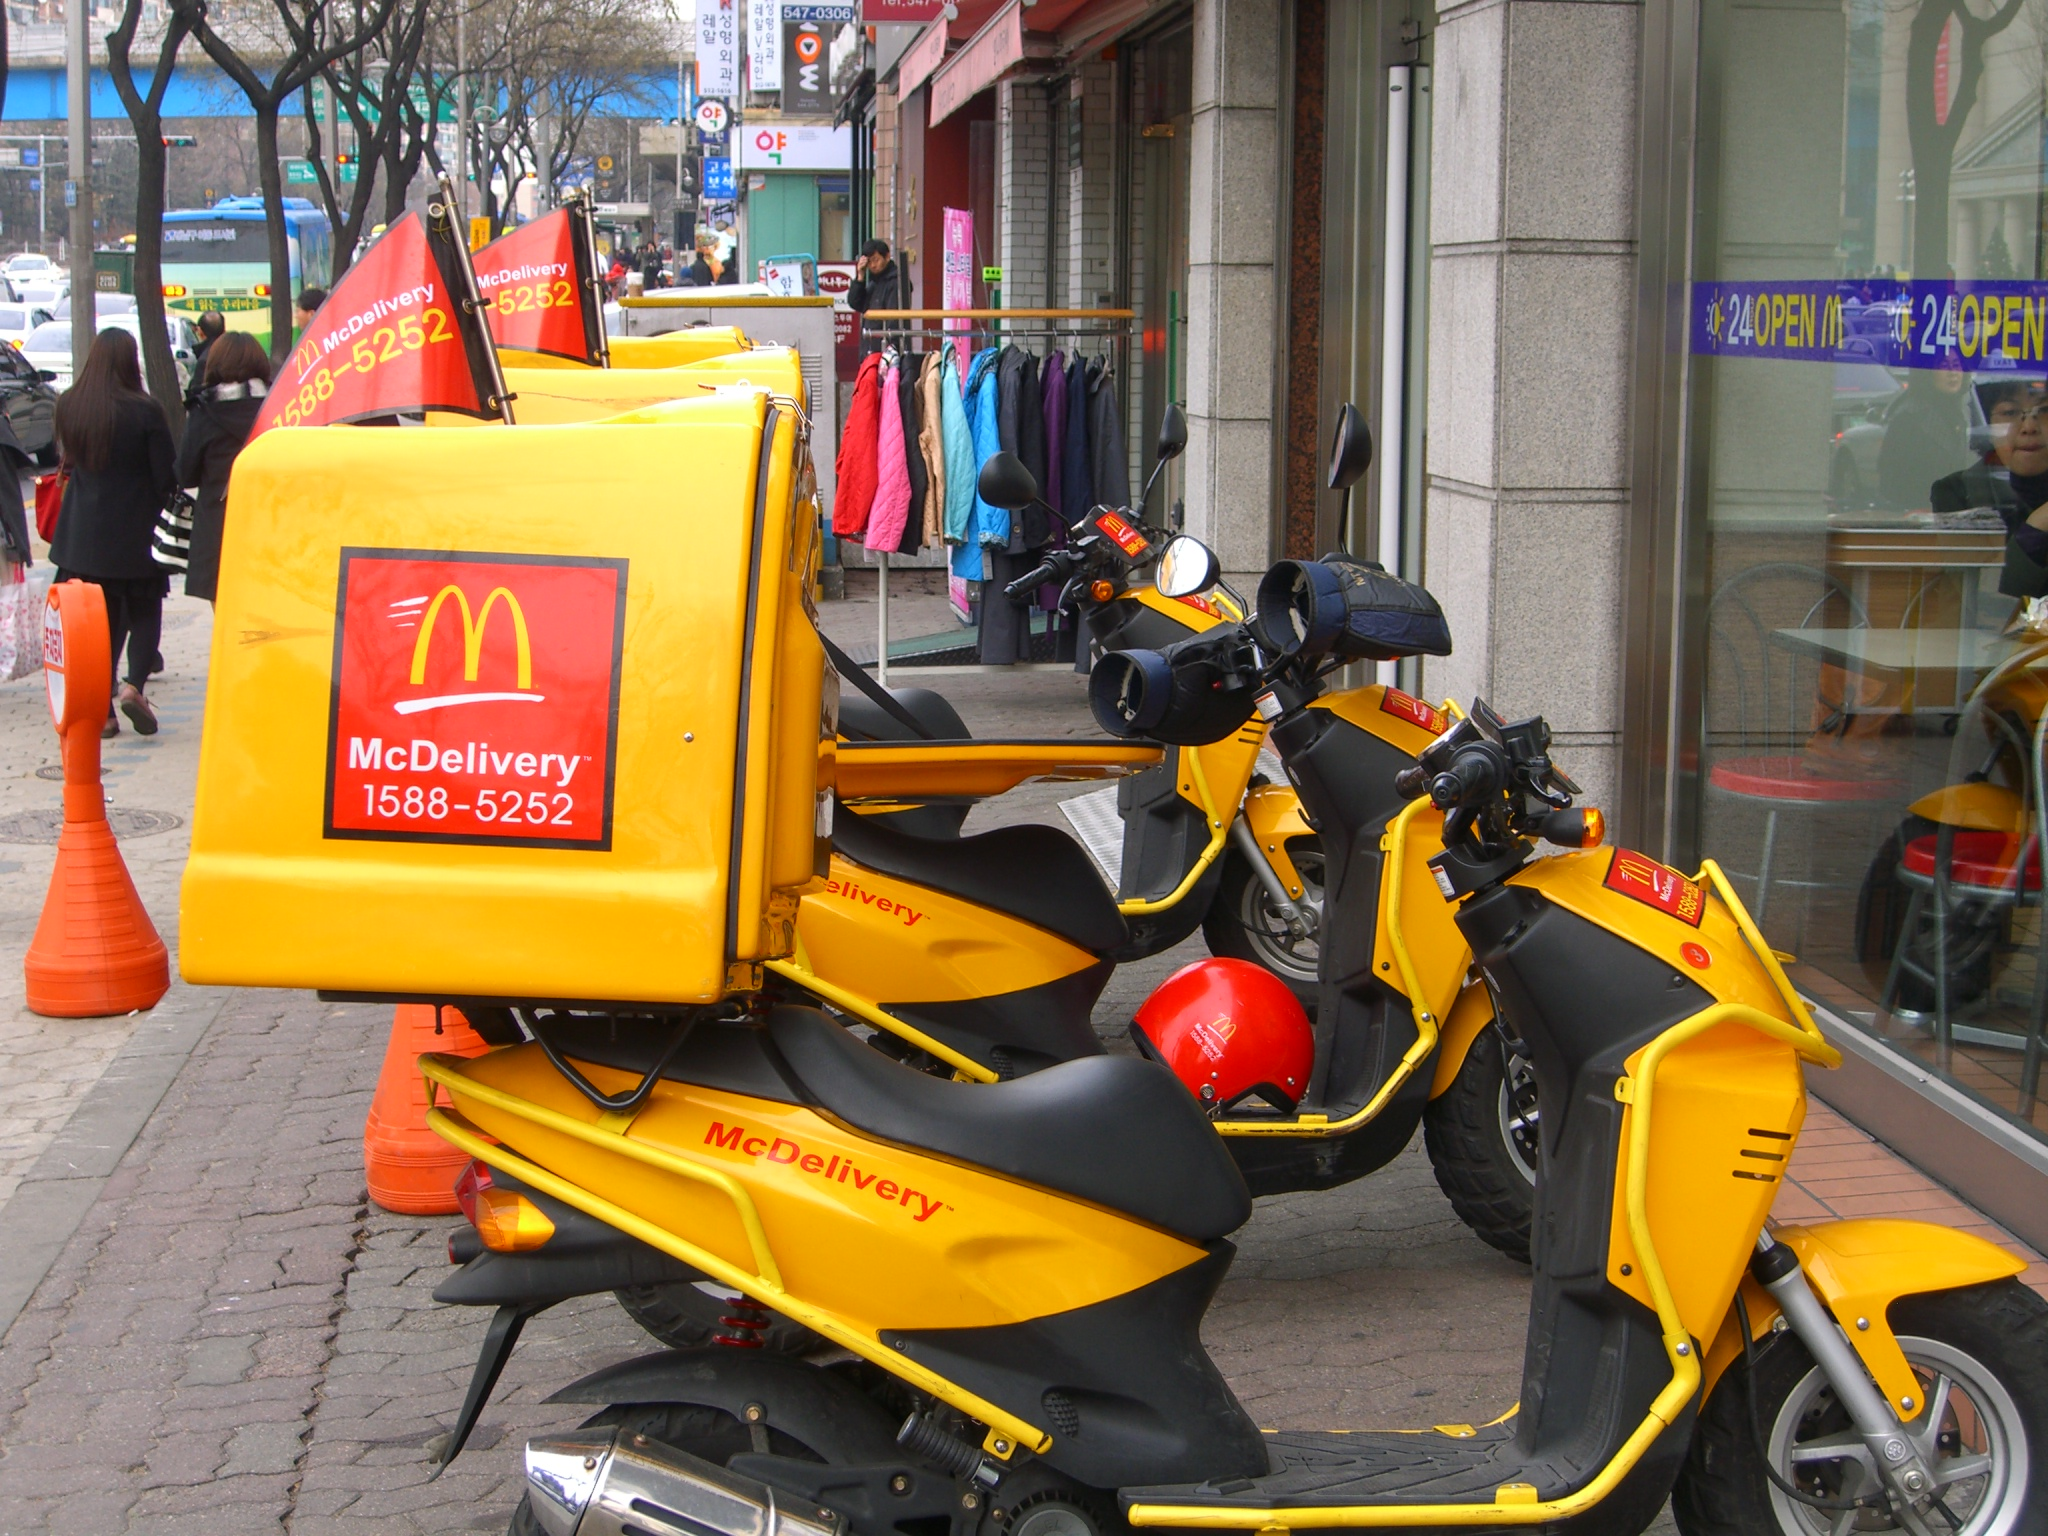 File:Mcdelivery.JPG - Wikimedia Commons